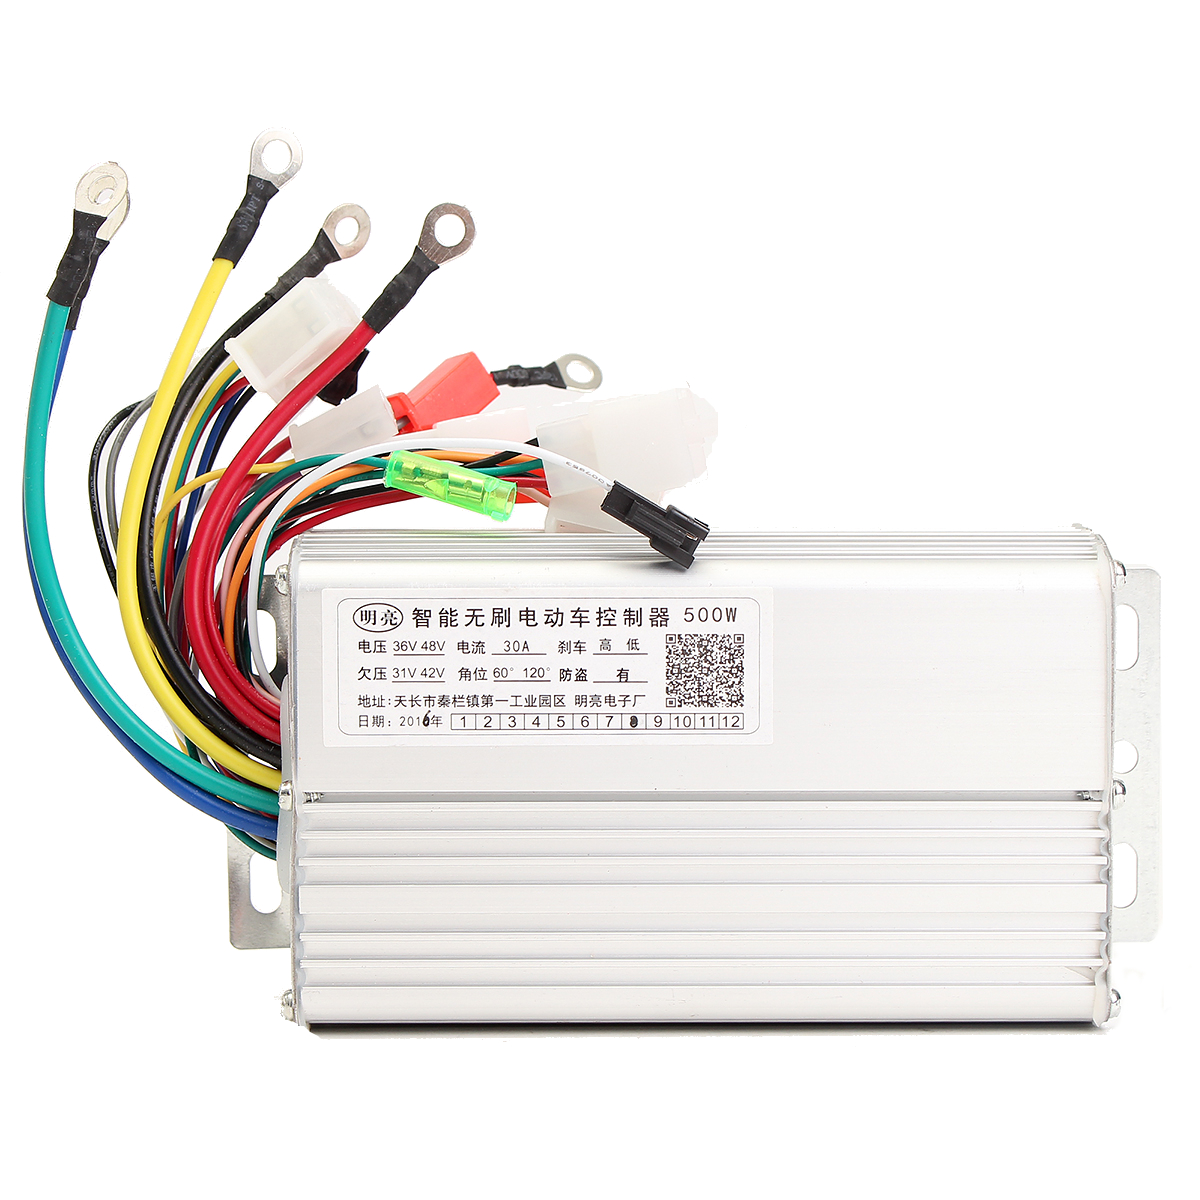 48V 500W 30A Brushless Motor Controller for Electric Scooters Bi